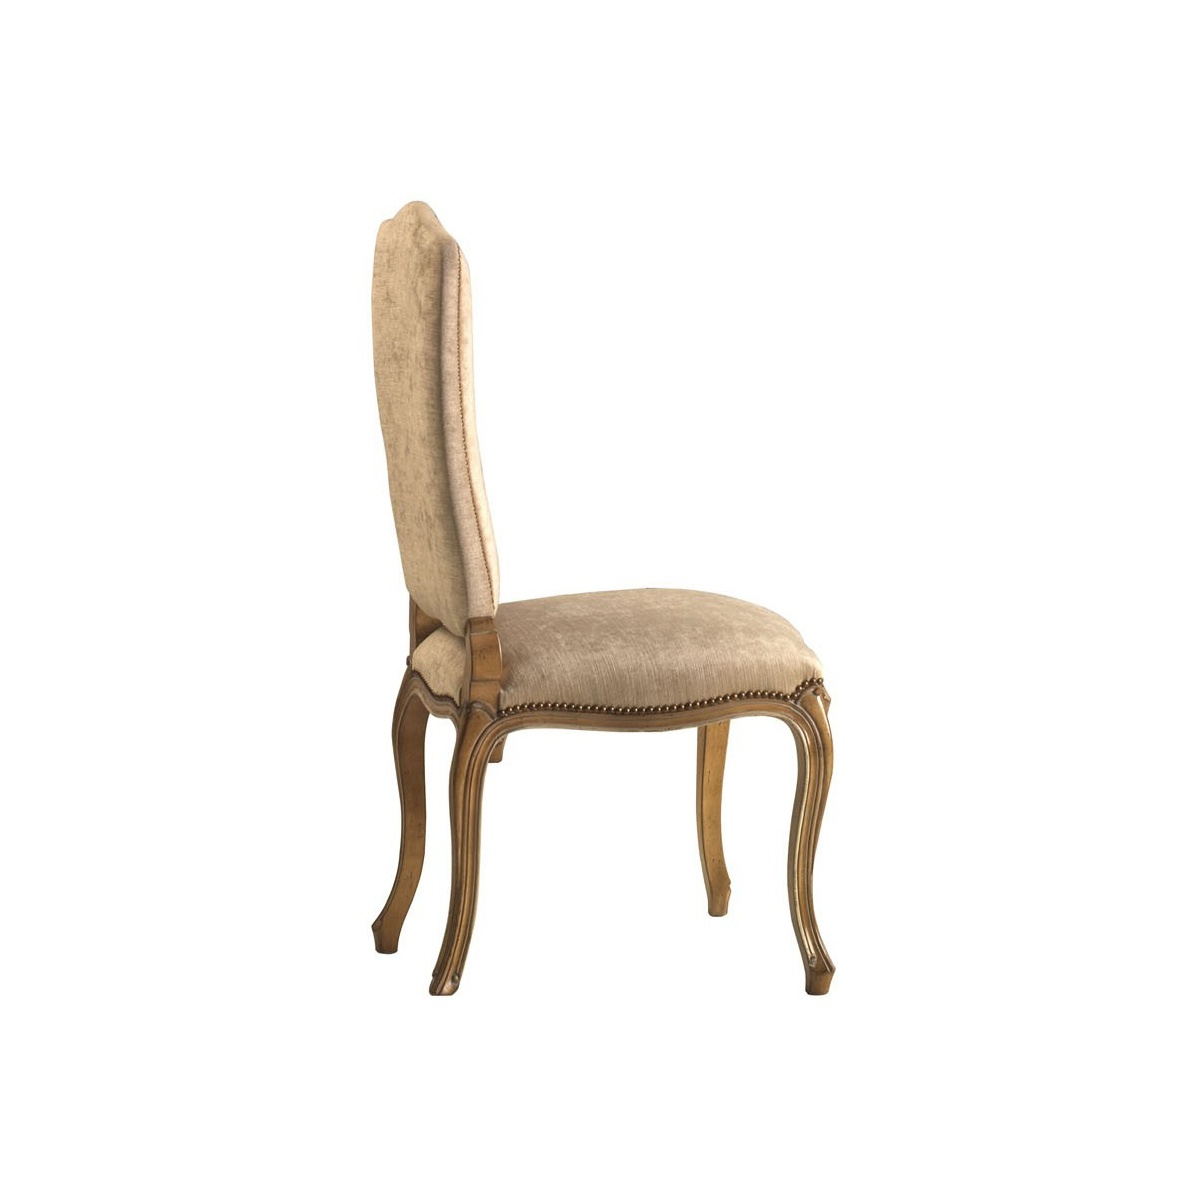 Luxury upholstered dining chair swanky interiors for Dining chairs with upholstered seats